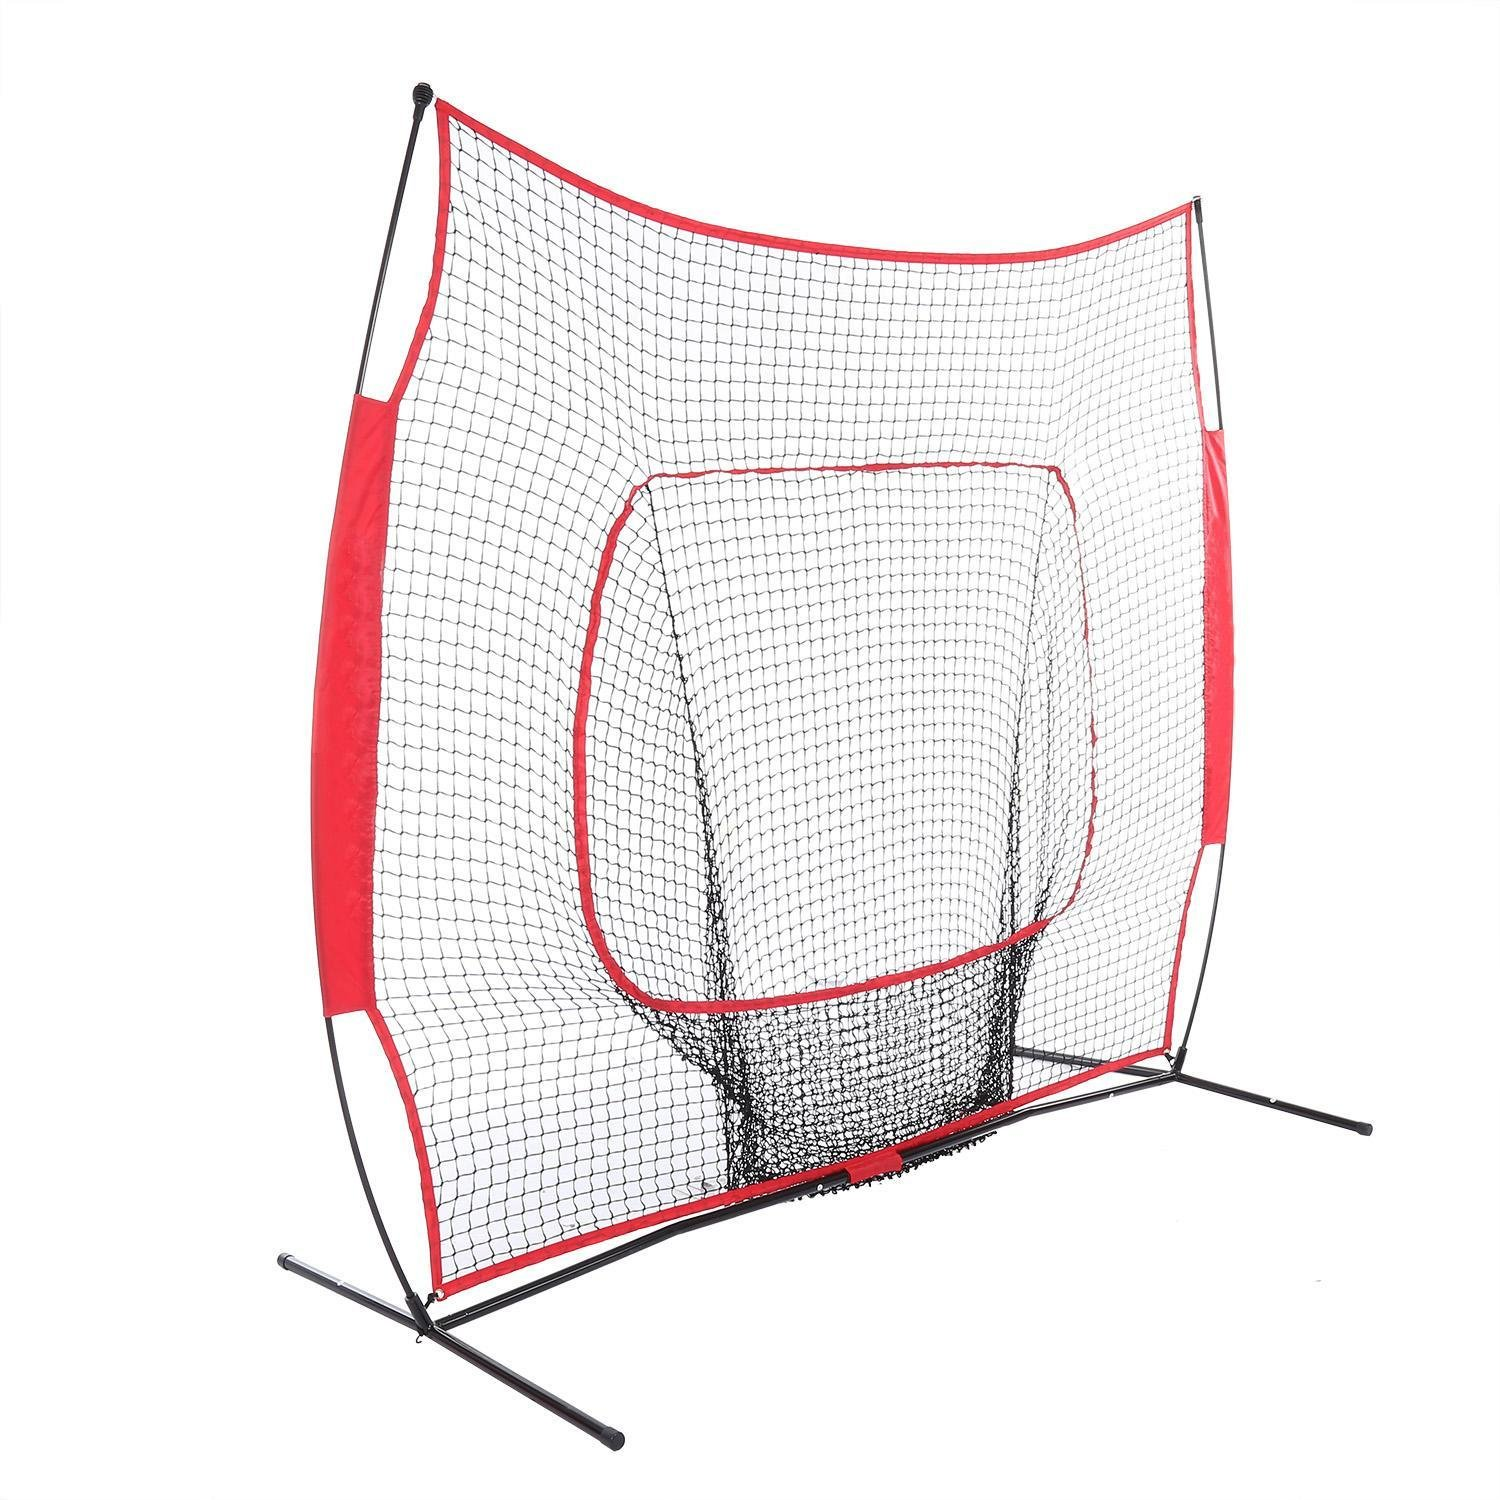 Rapesee 7 x 7ft Baseball Softball Practice Nets, Powerful Baseball Trainer Hitting Pitching Batting Net with Bow Frame